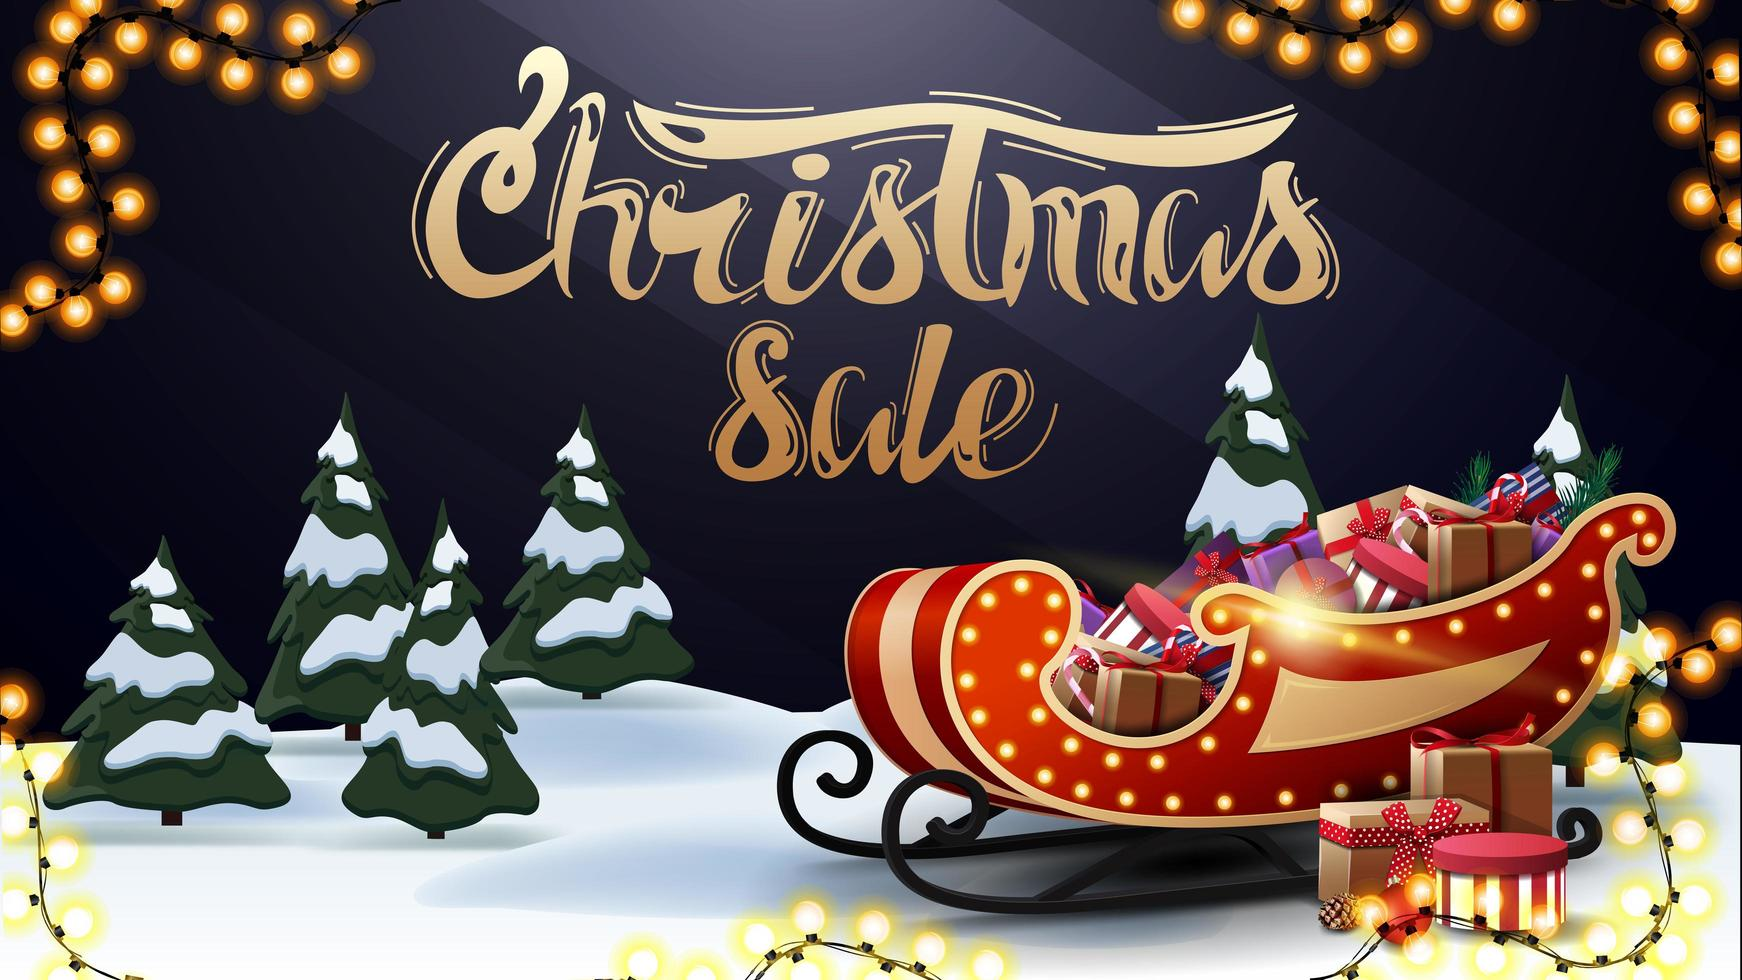 Christmas sale, beautiful dark and blue discount banner with gold lettering, cartoon winter forest and Santa Sleigh with presents vector